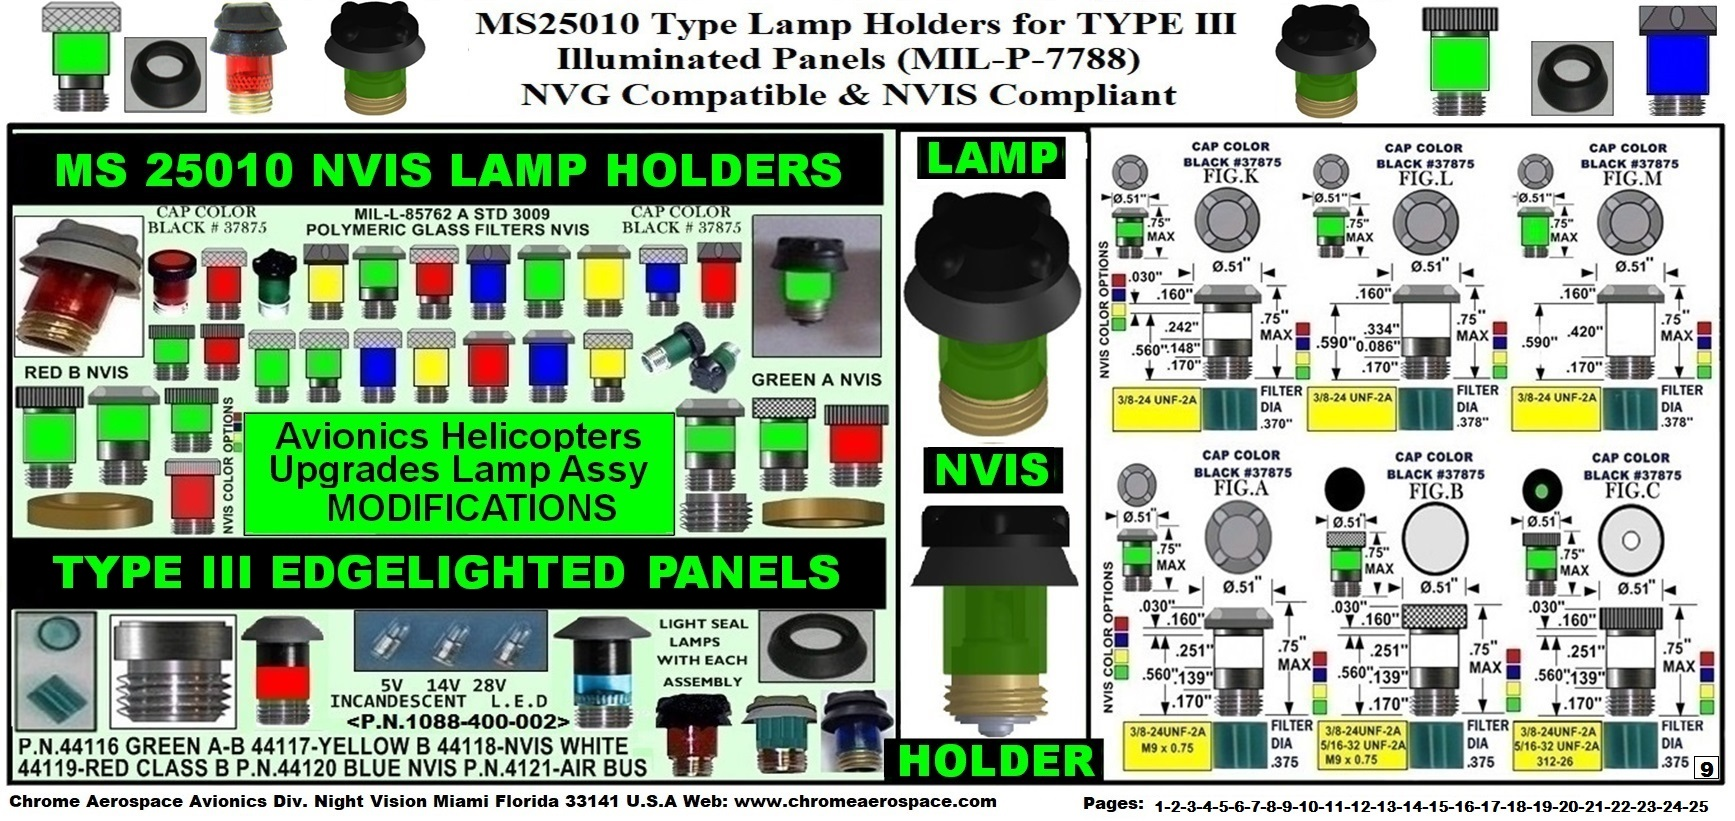 #9 MS25010 carrusel nvis lamp holder nvis colors